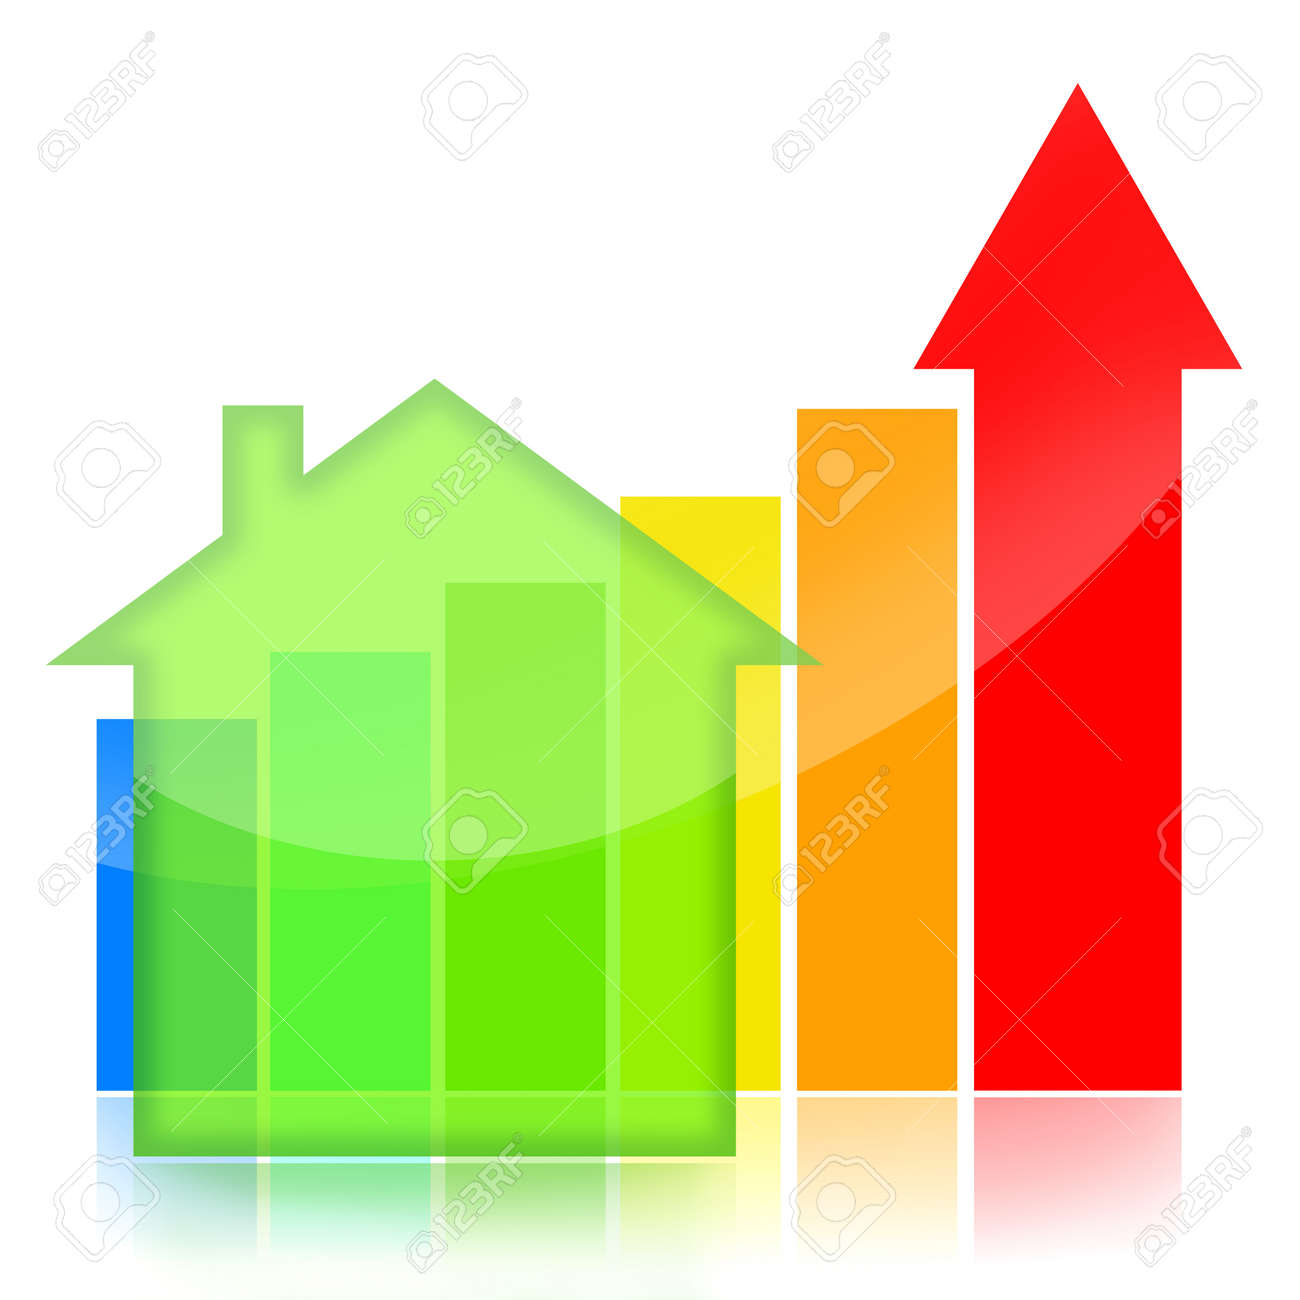 Housing market business charts with green house and colorful statistical bar Stock Photo - 10272617